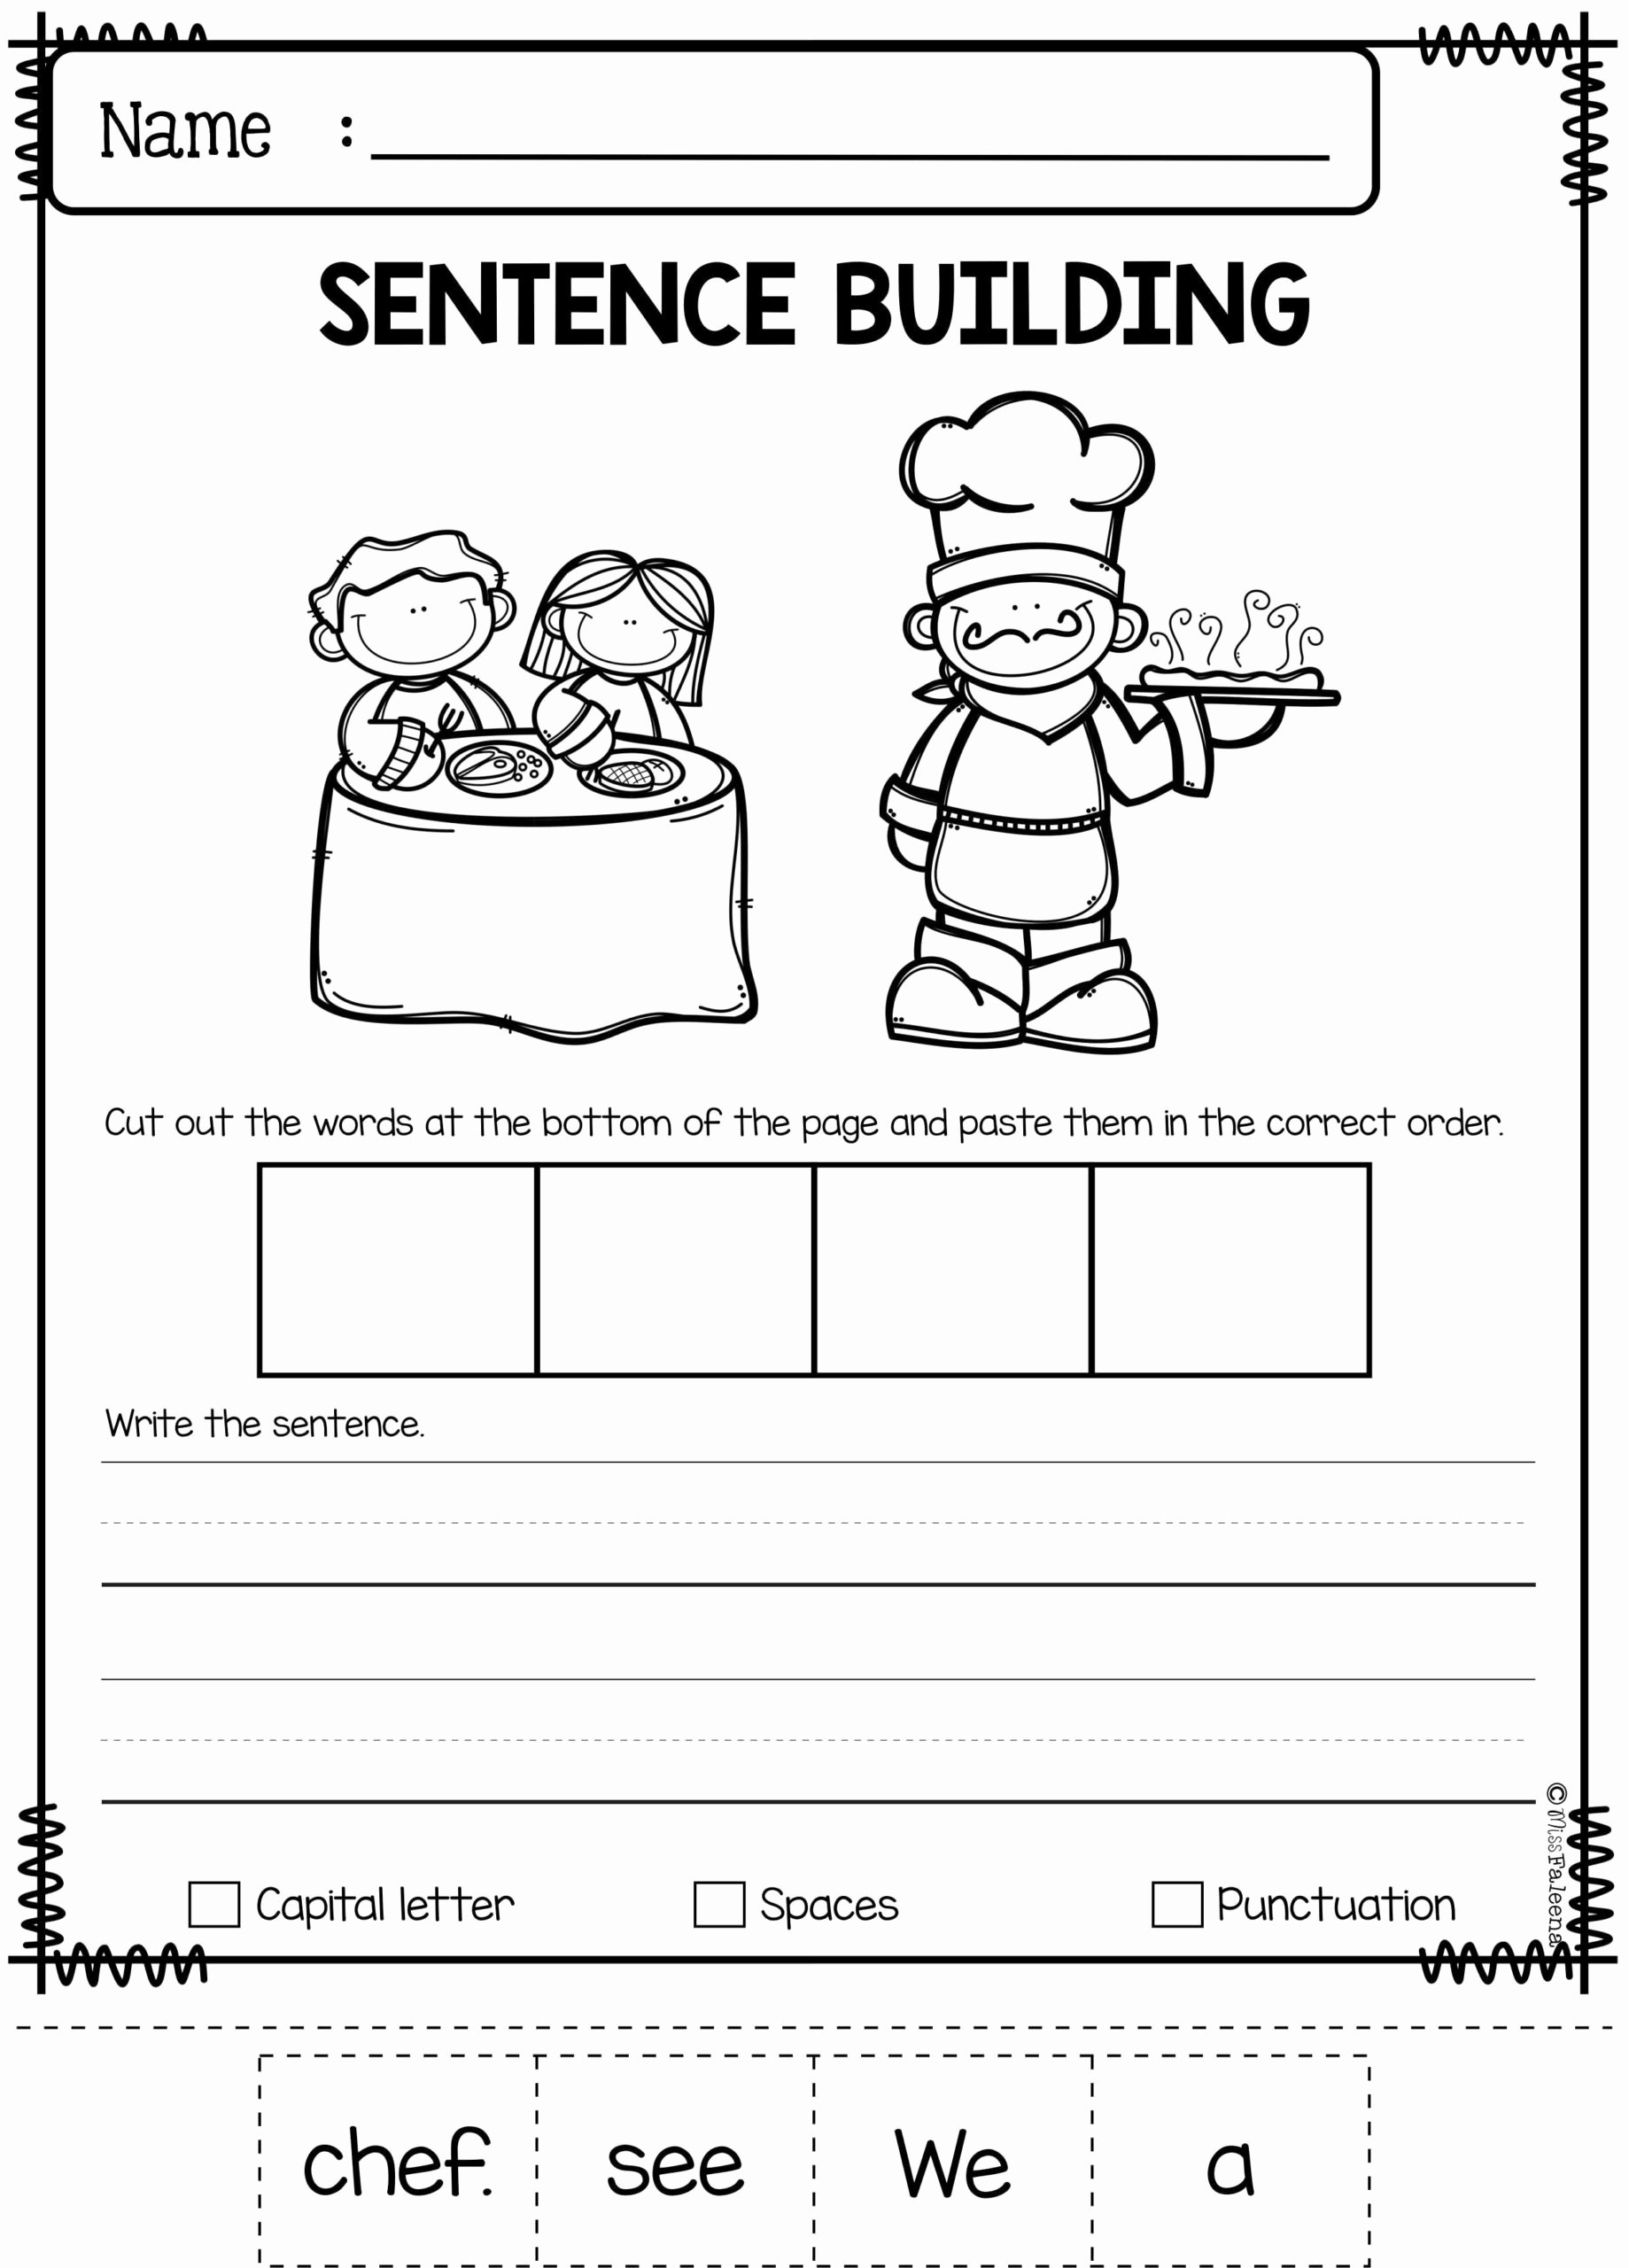 Graphing Worksheets for Preschoolers Unique September Sentence Building Writing Skills Worksheets